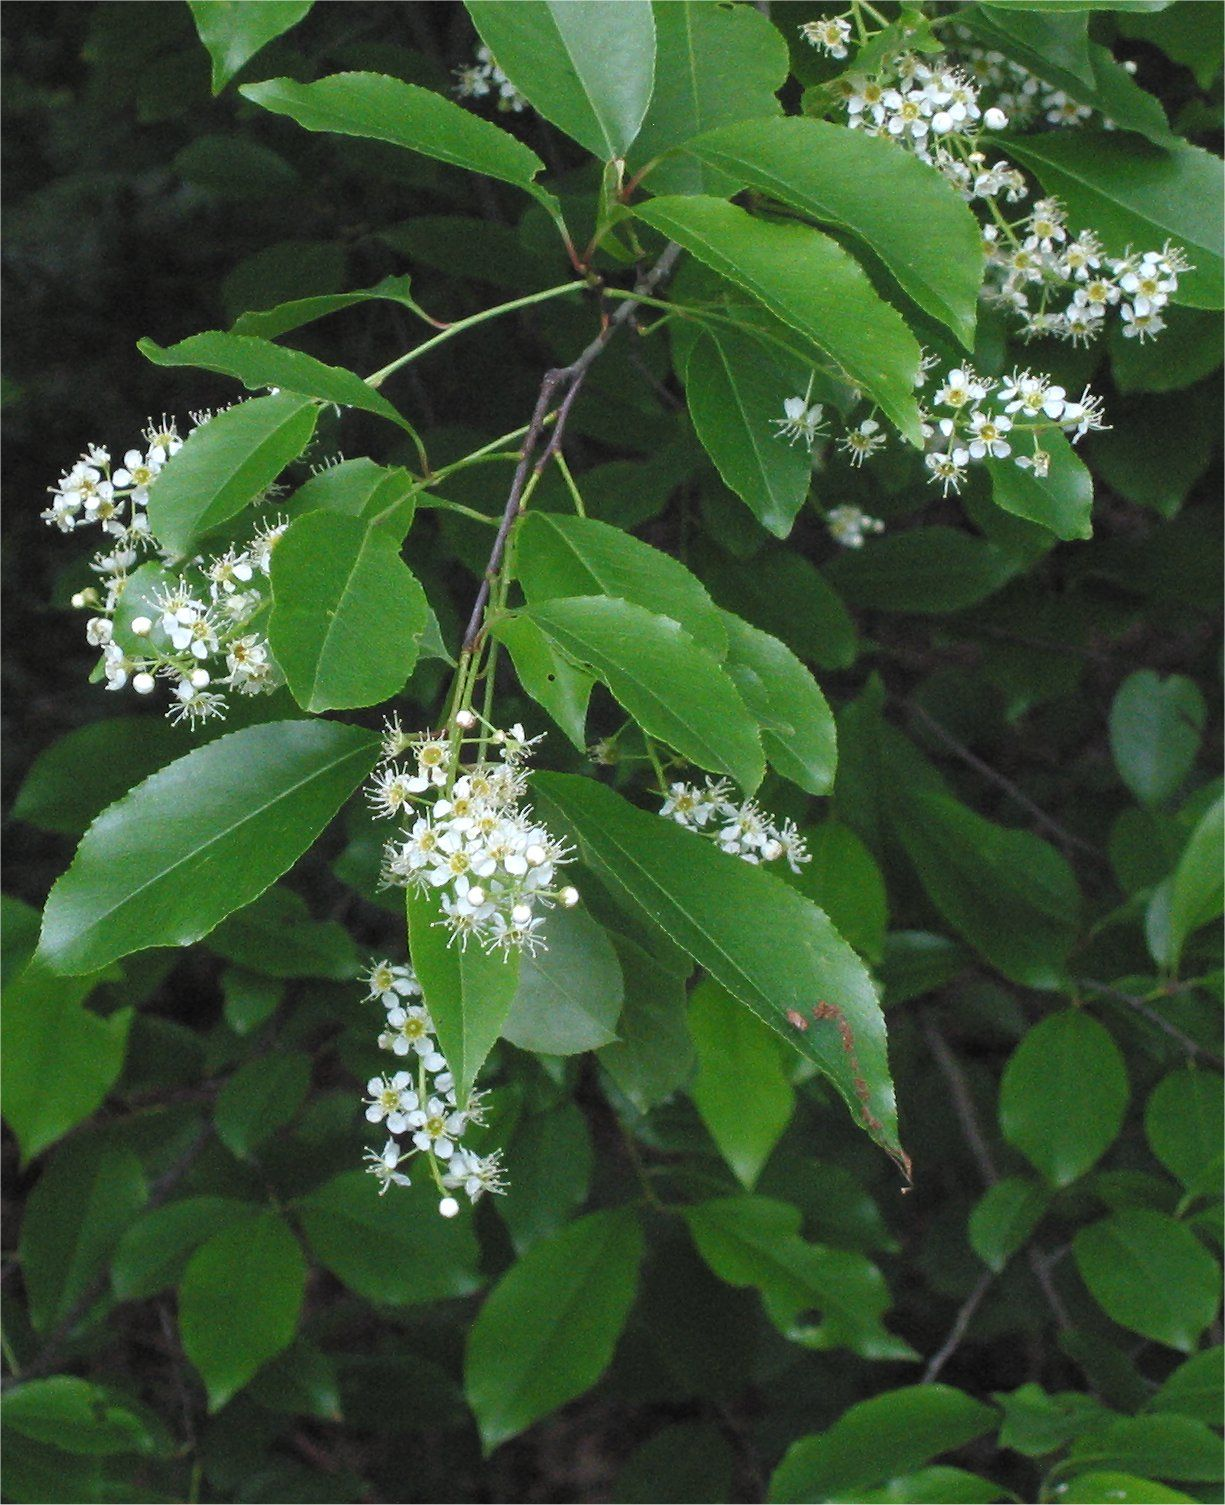 7 Plants That Can Do You Some Serious Harm Black Cherry Tree Tree Seeds Plants